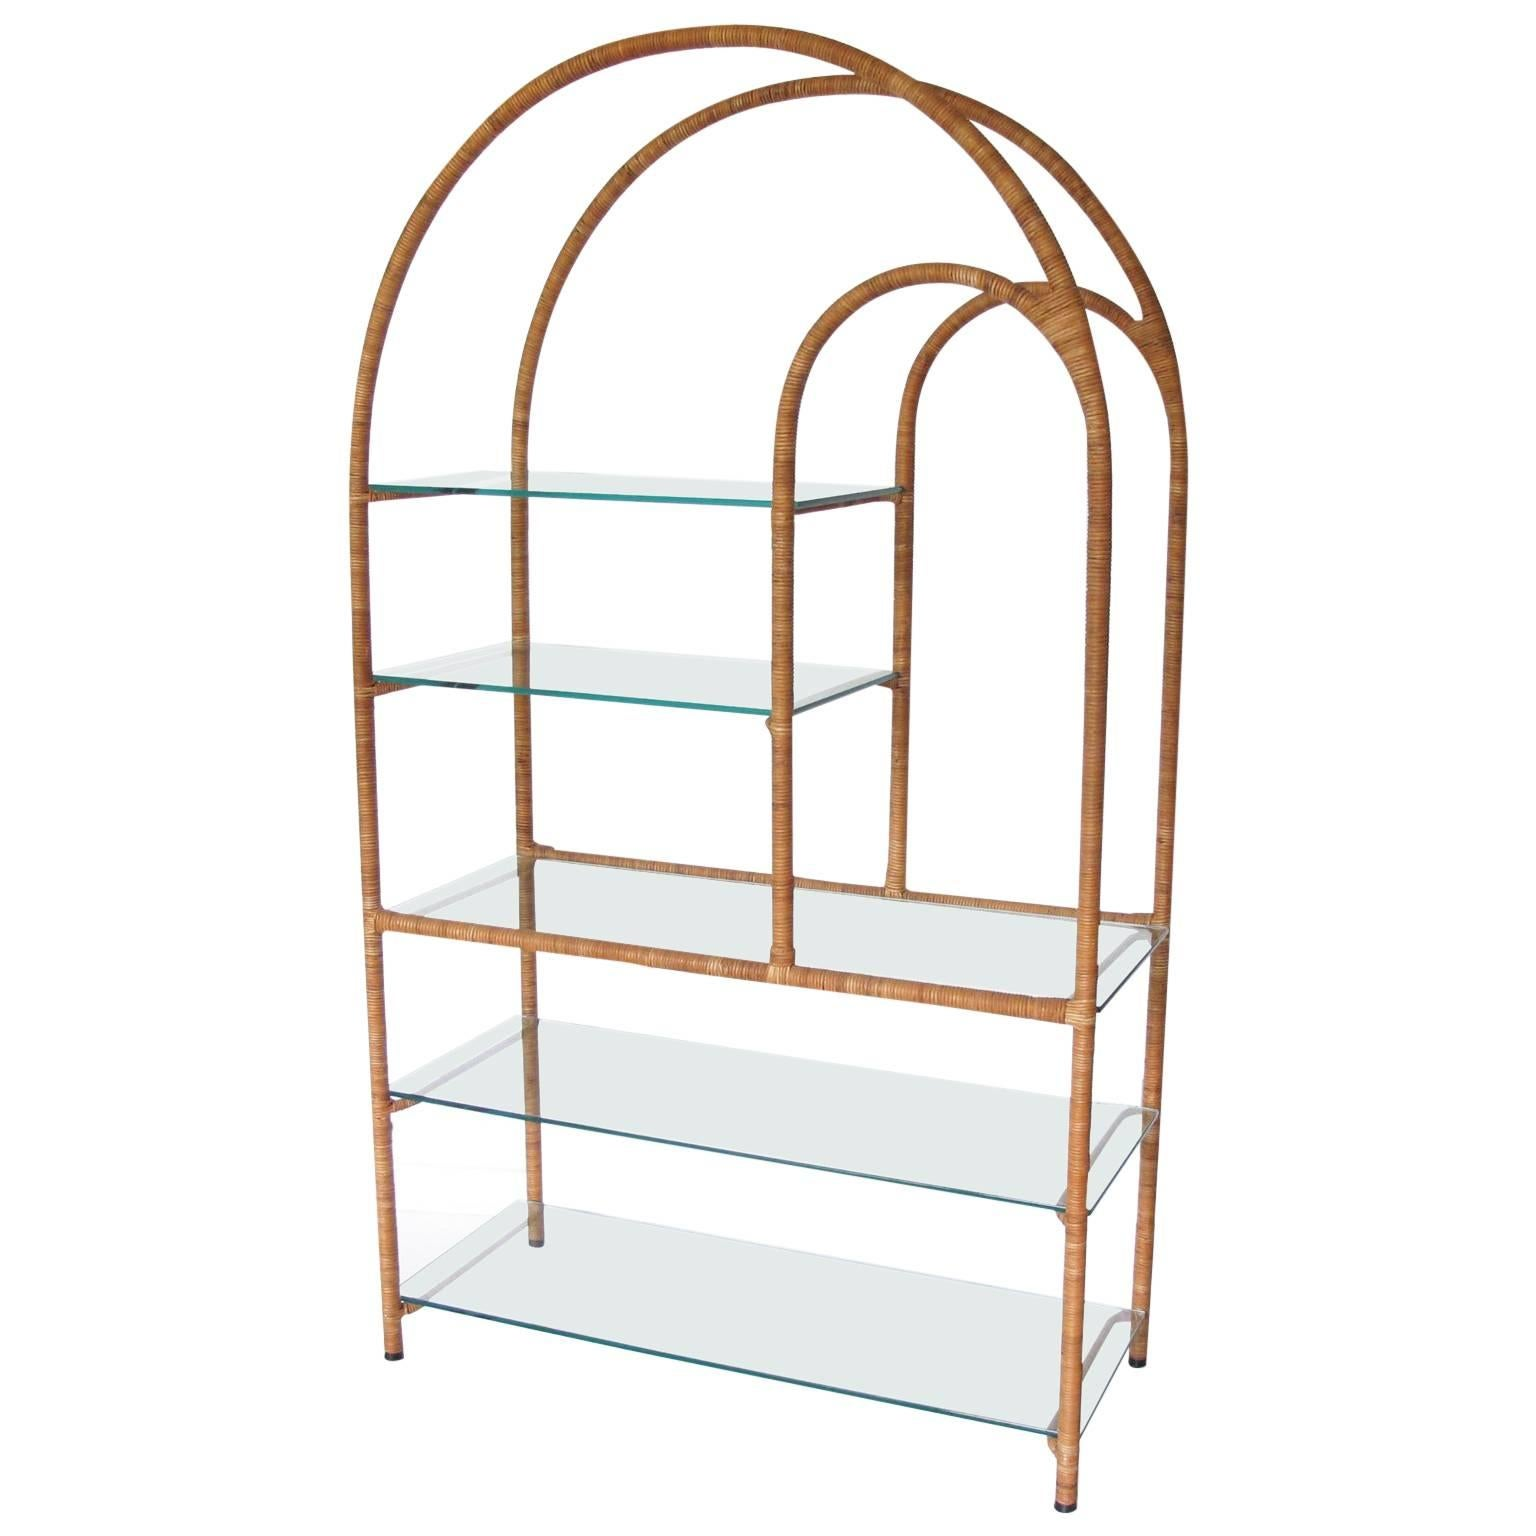 midcentury modern milo baughman style rattan and glass etagere bookcase